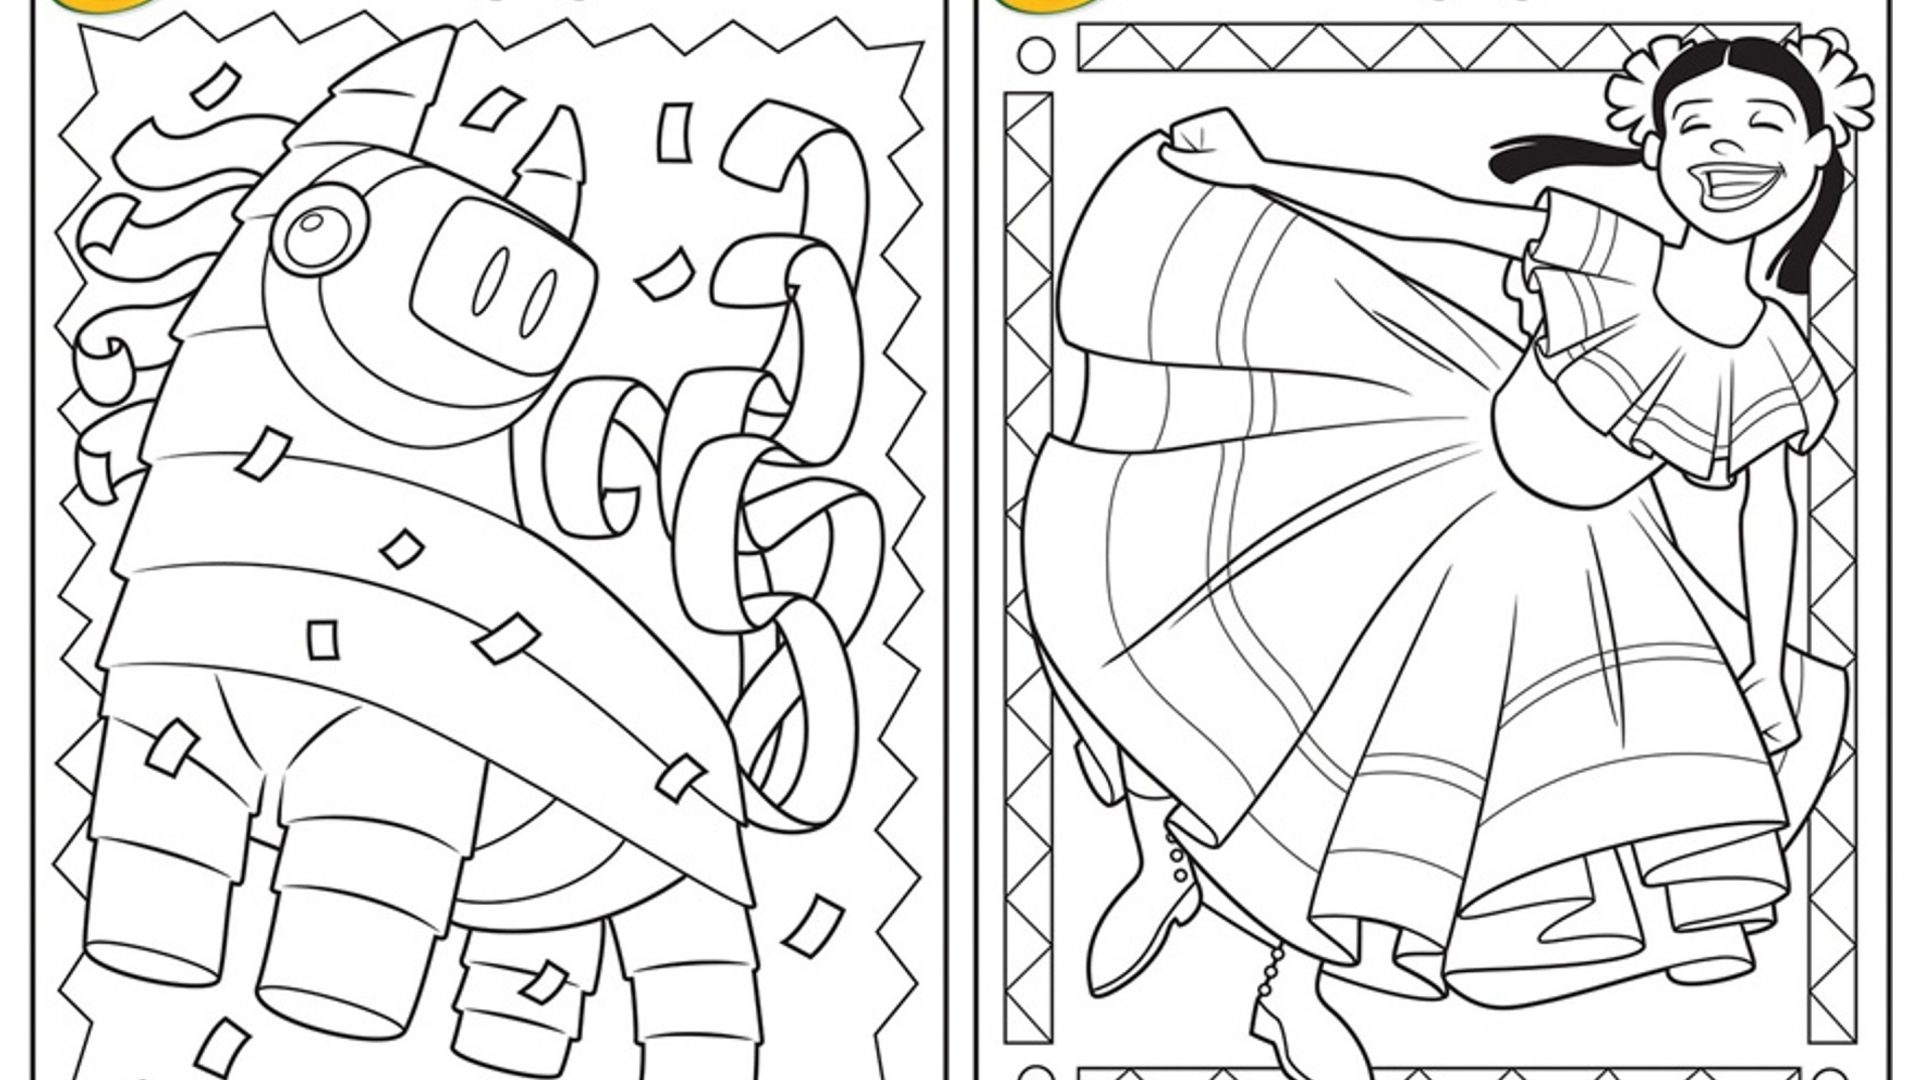 Word Search Coloring Pages at GetDrawings.com | Free for ...